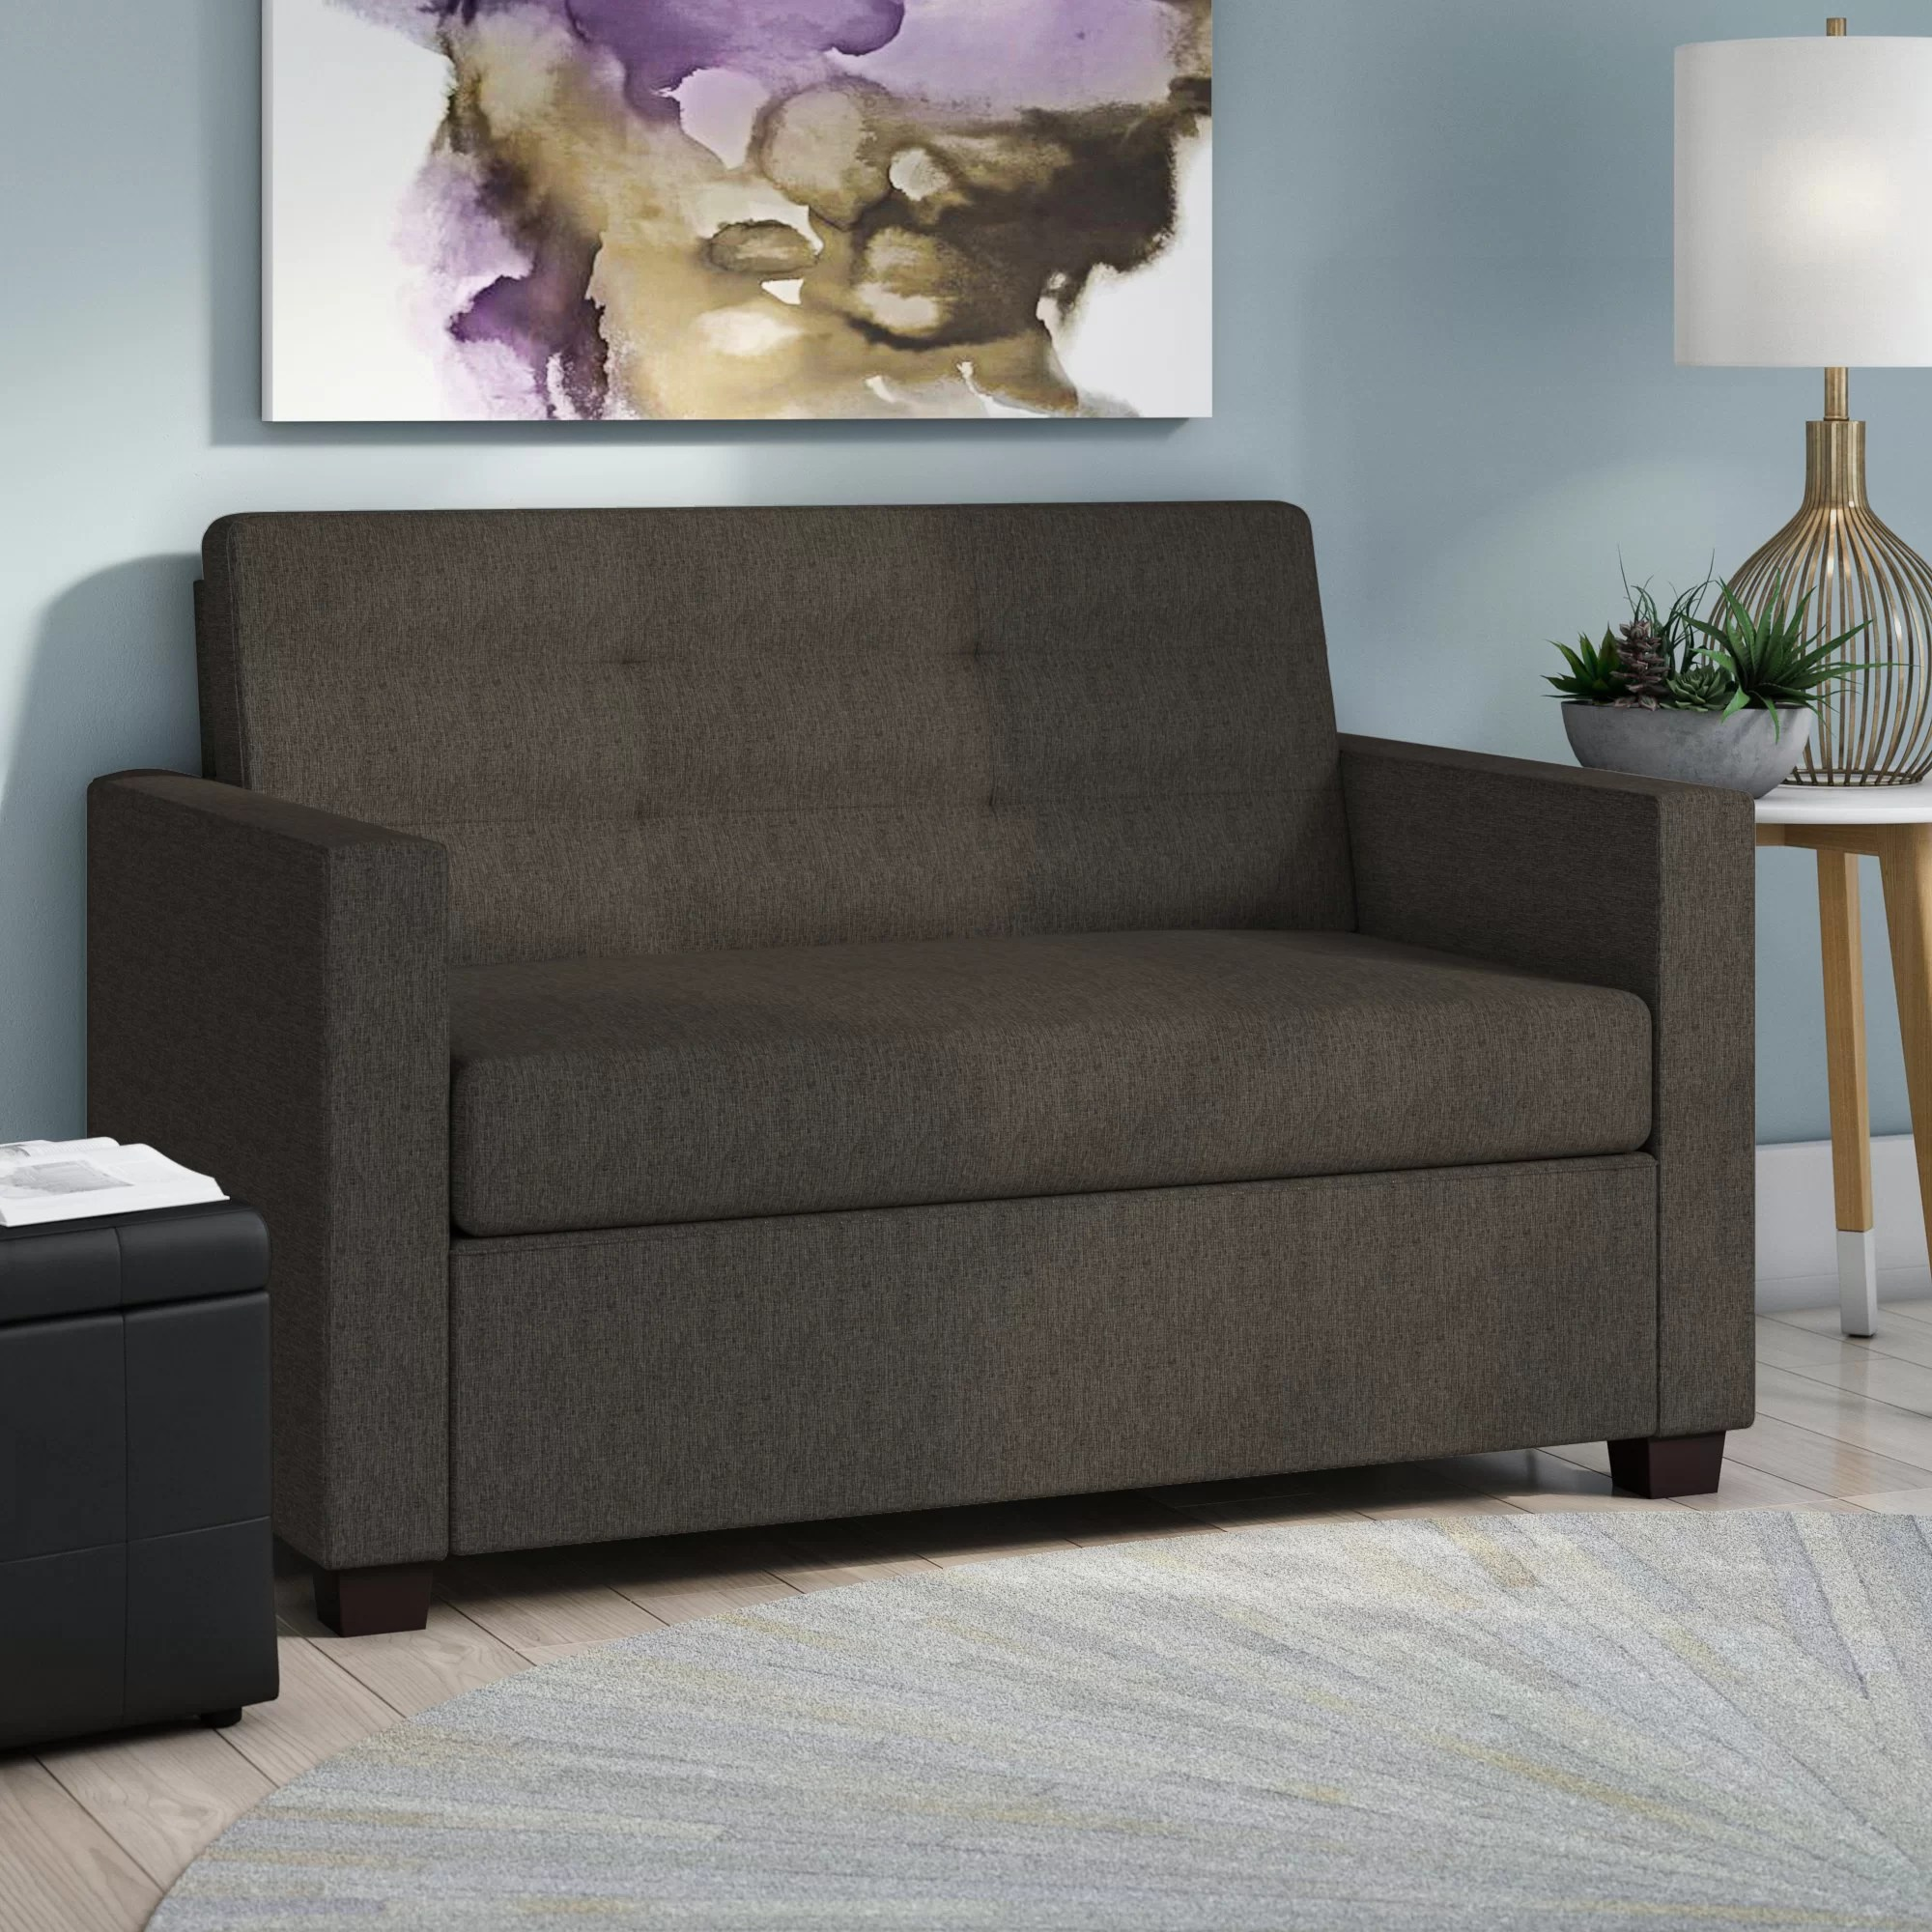 Sofa Bed Couch Jovita Sleeper Sofa Bed